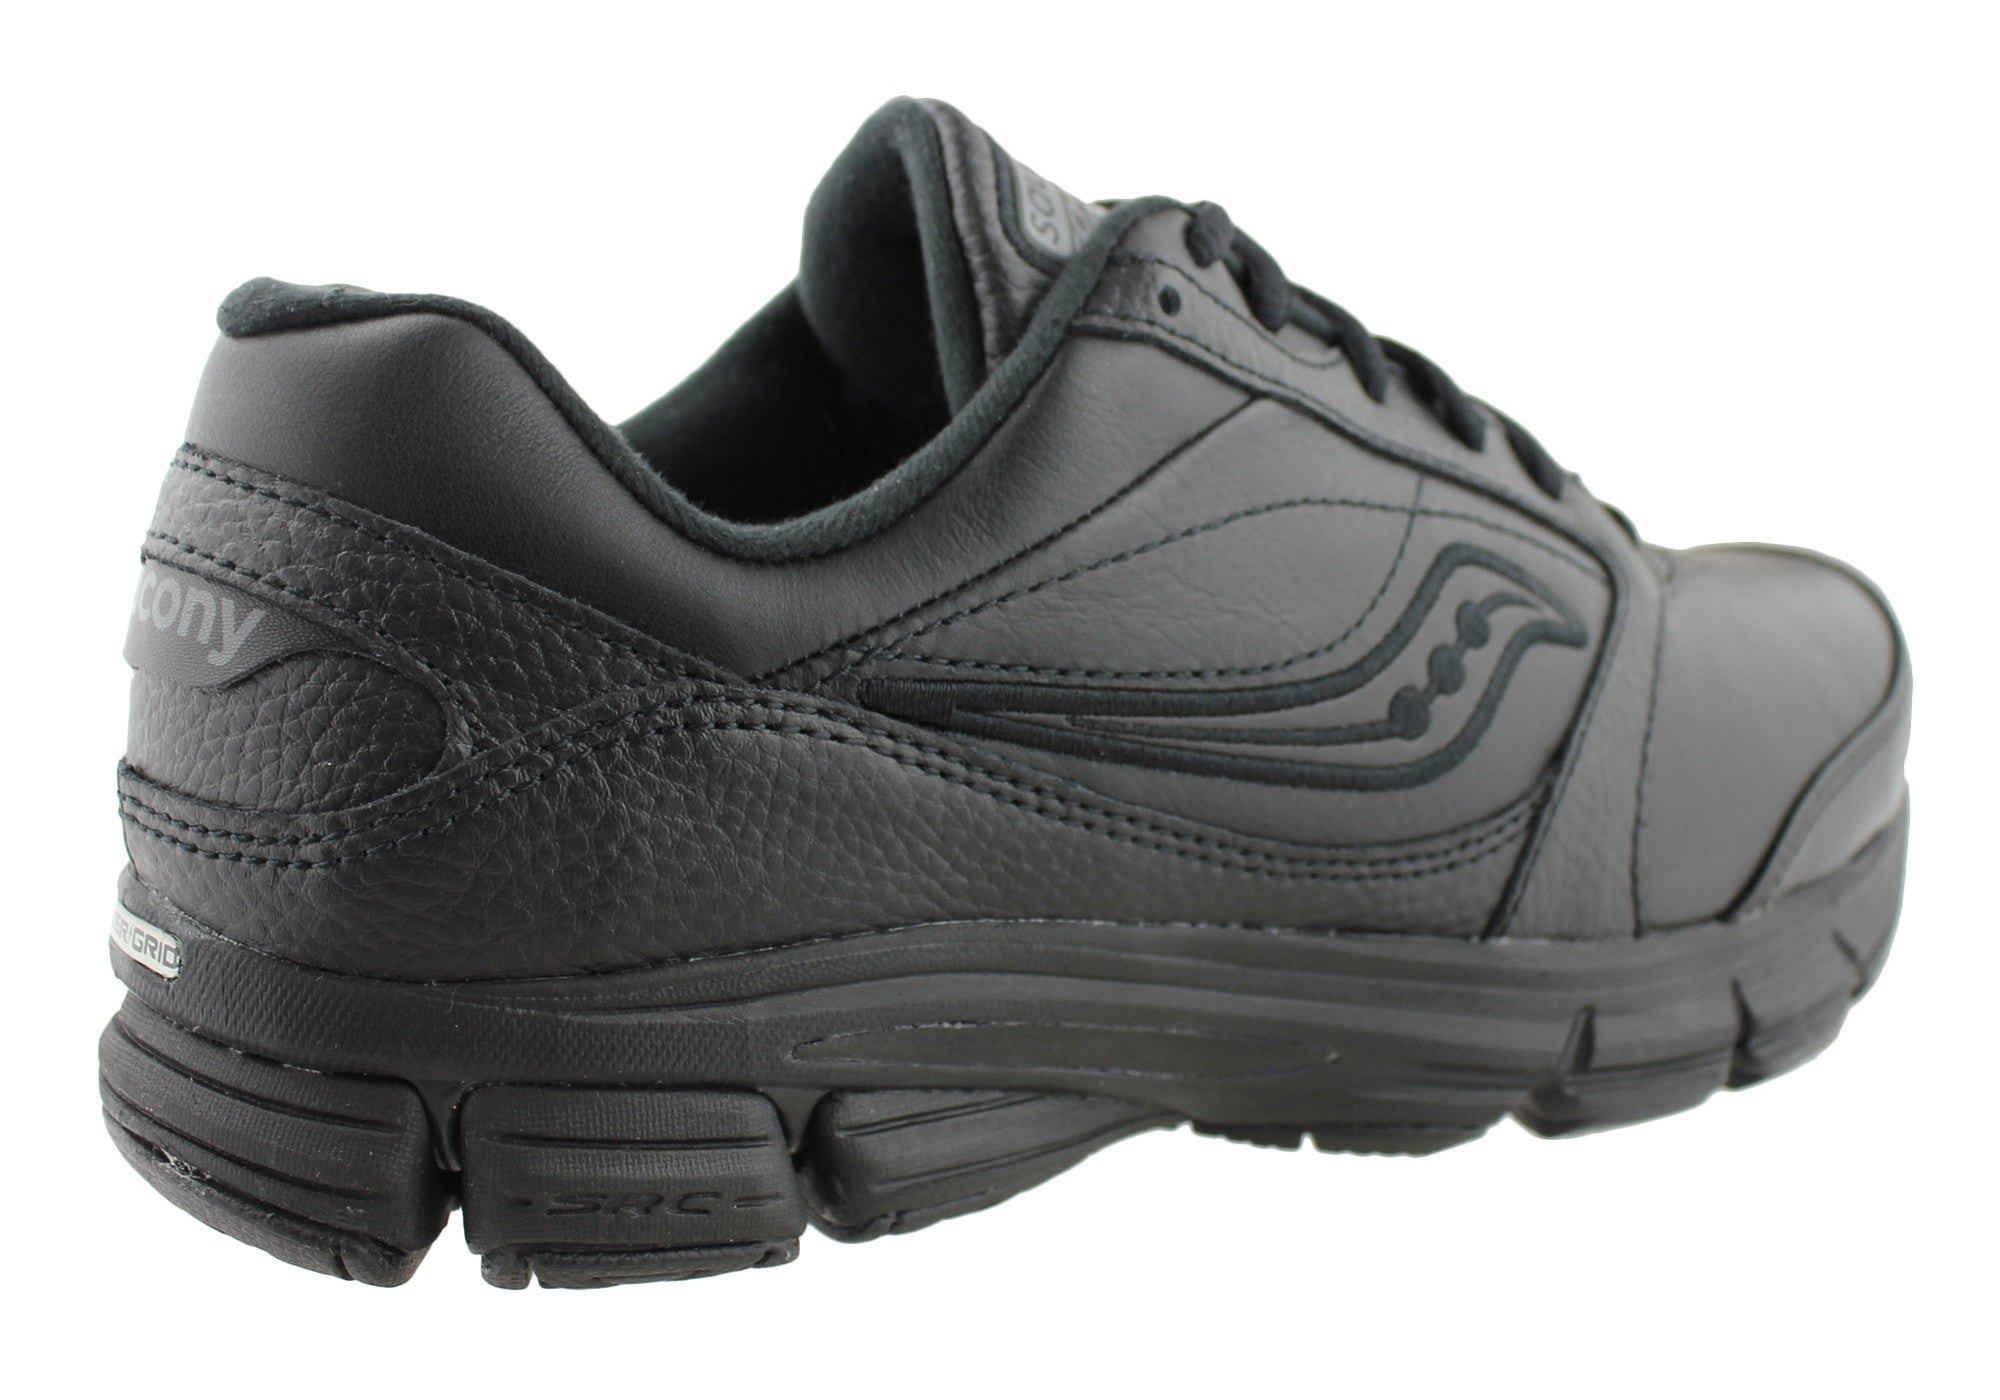 8b01c75df40 Buy saucony leather > Up to OFF63% Discounted